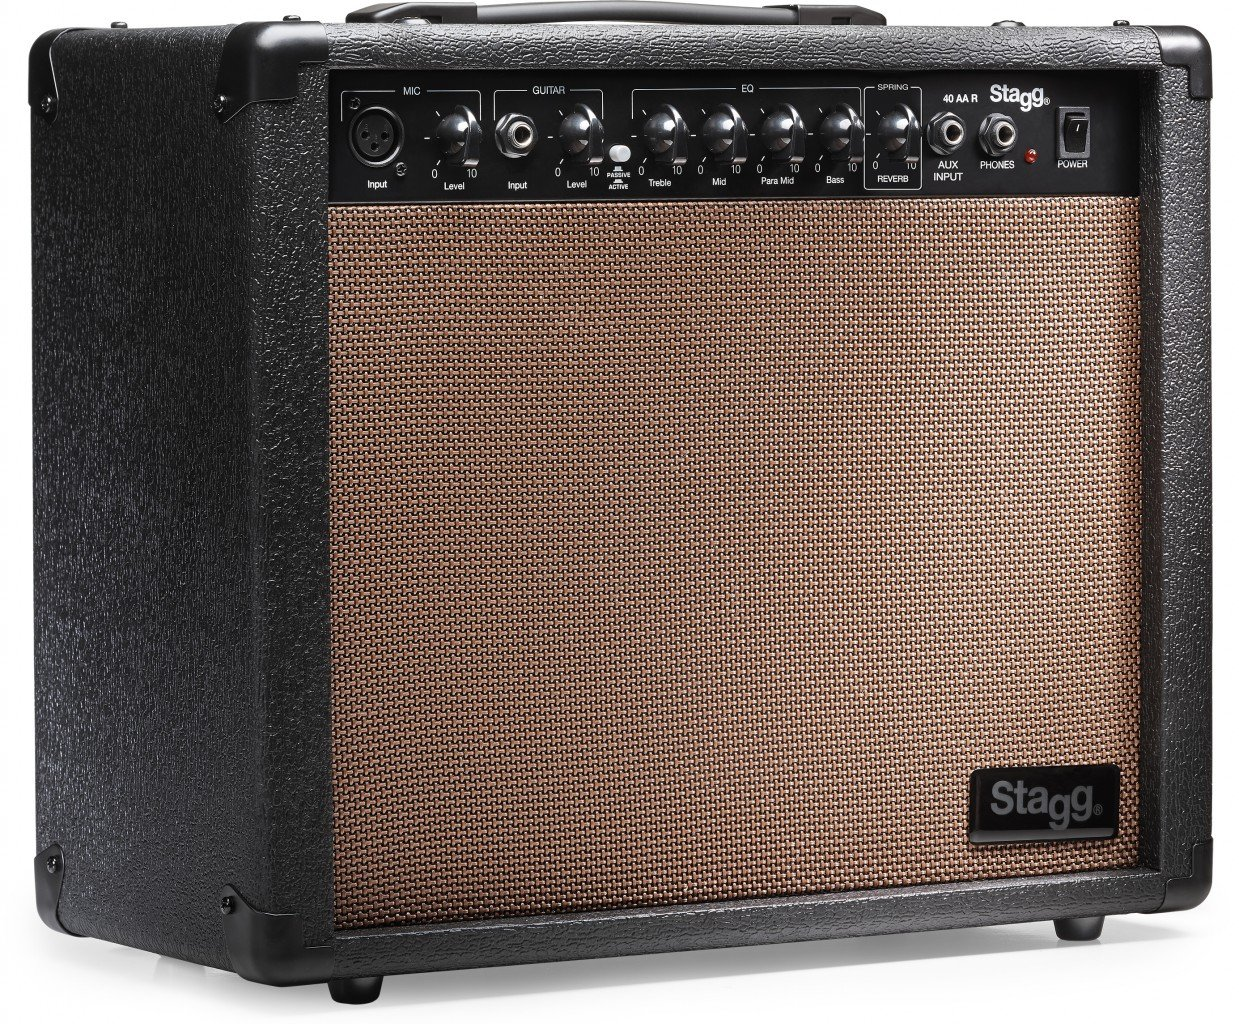 Stagg 40 AA R USA 40 Watt RMS Acoustic Guitar Amplifier with Spring Reverb by Stagg